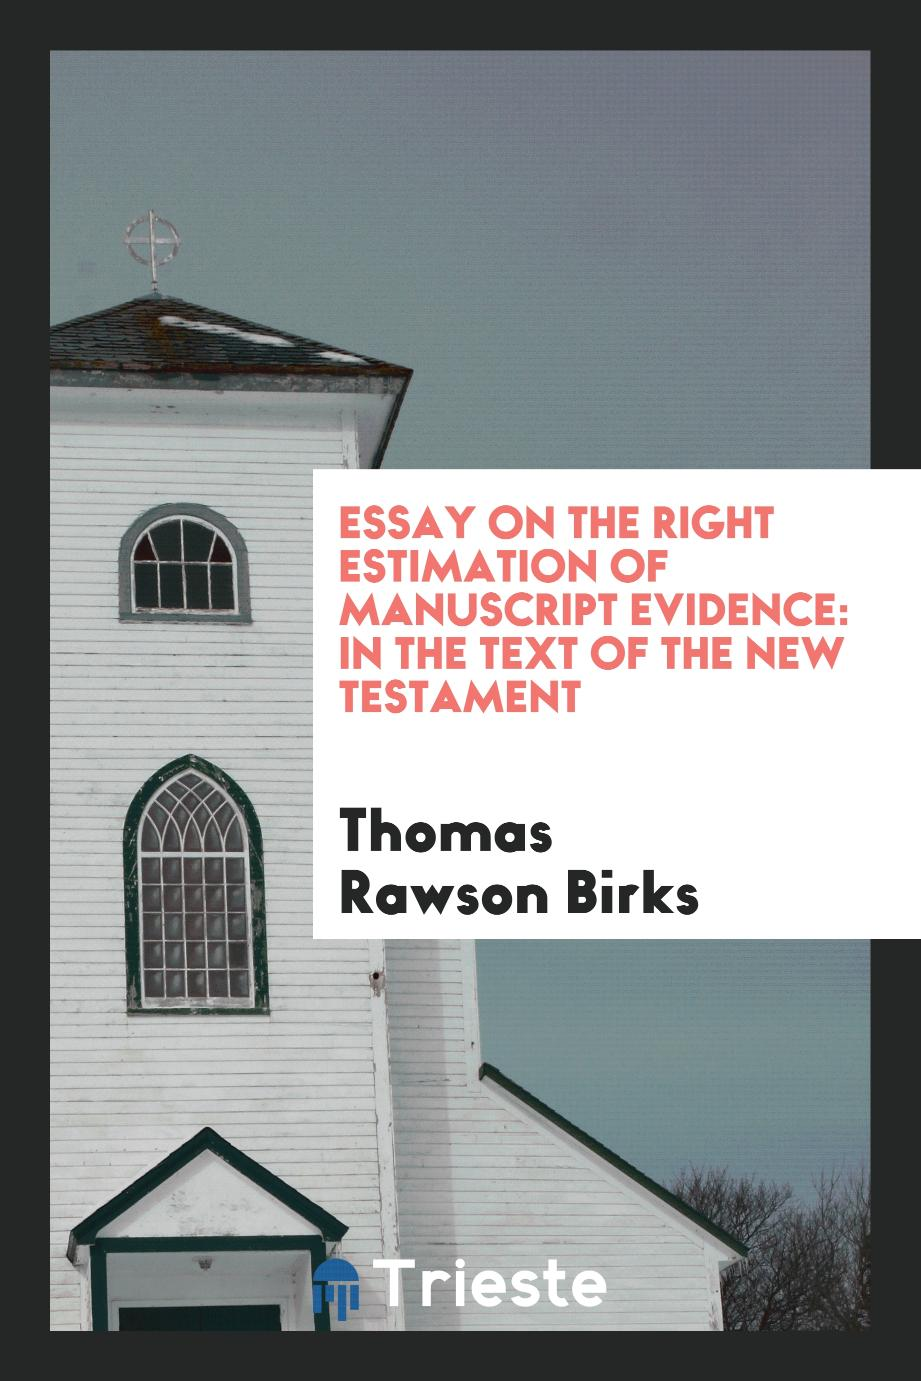 Essay on the Right Estimation of Manuscript Evidence: In the Text of the New Testament